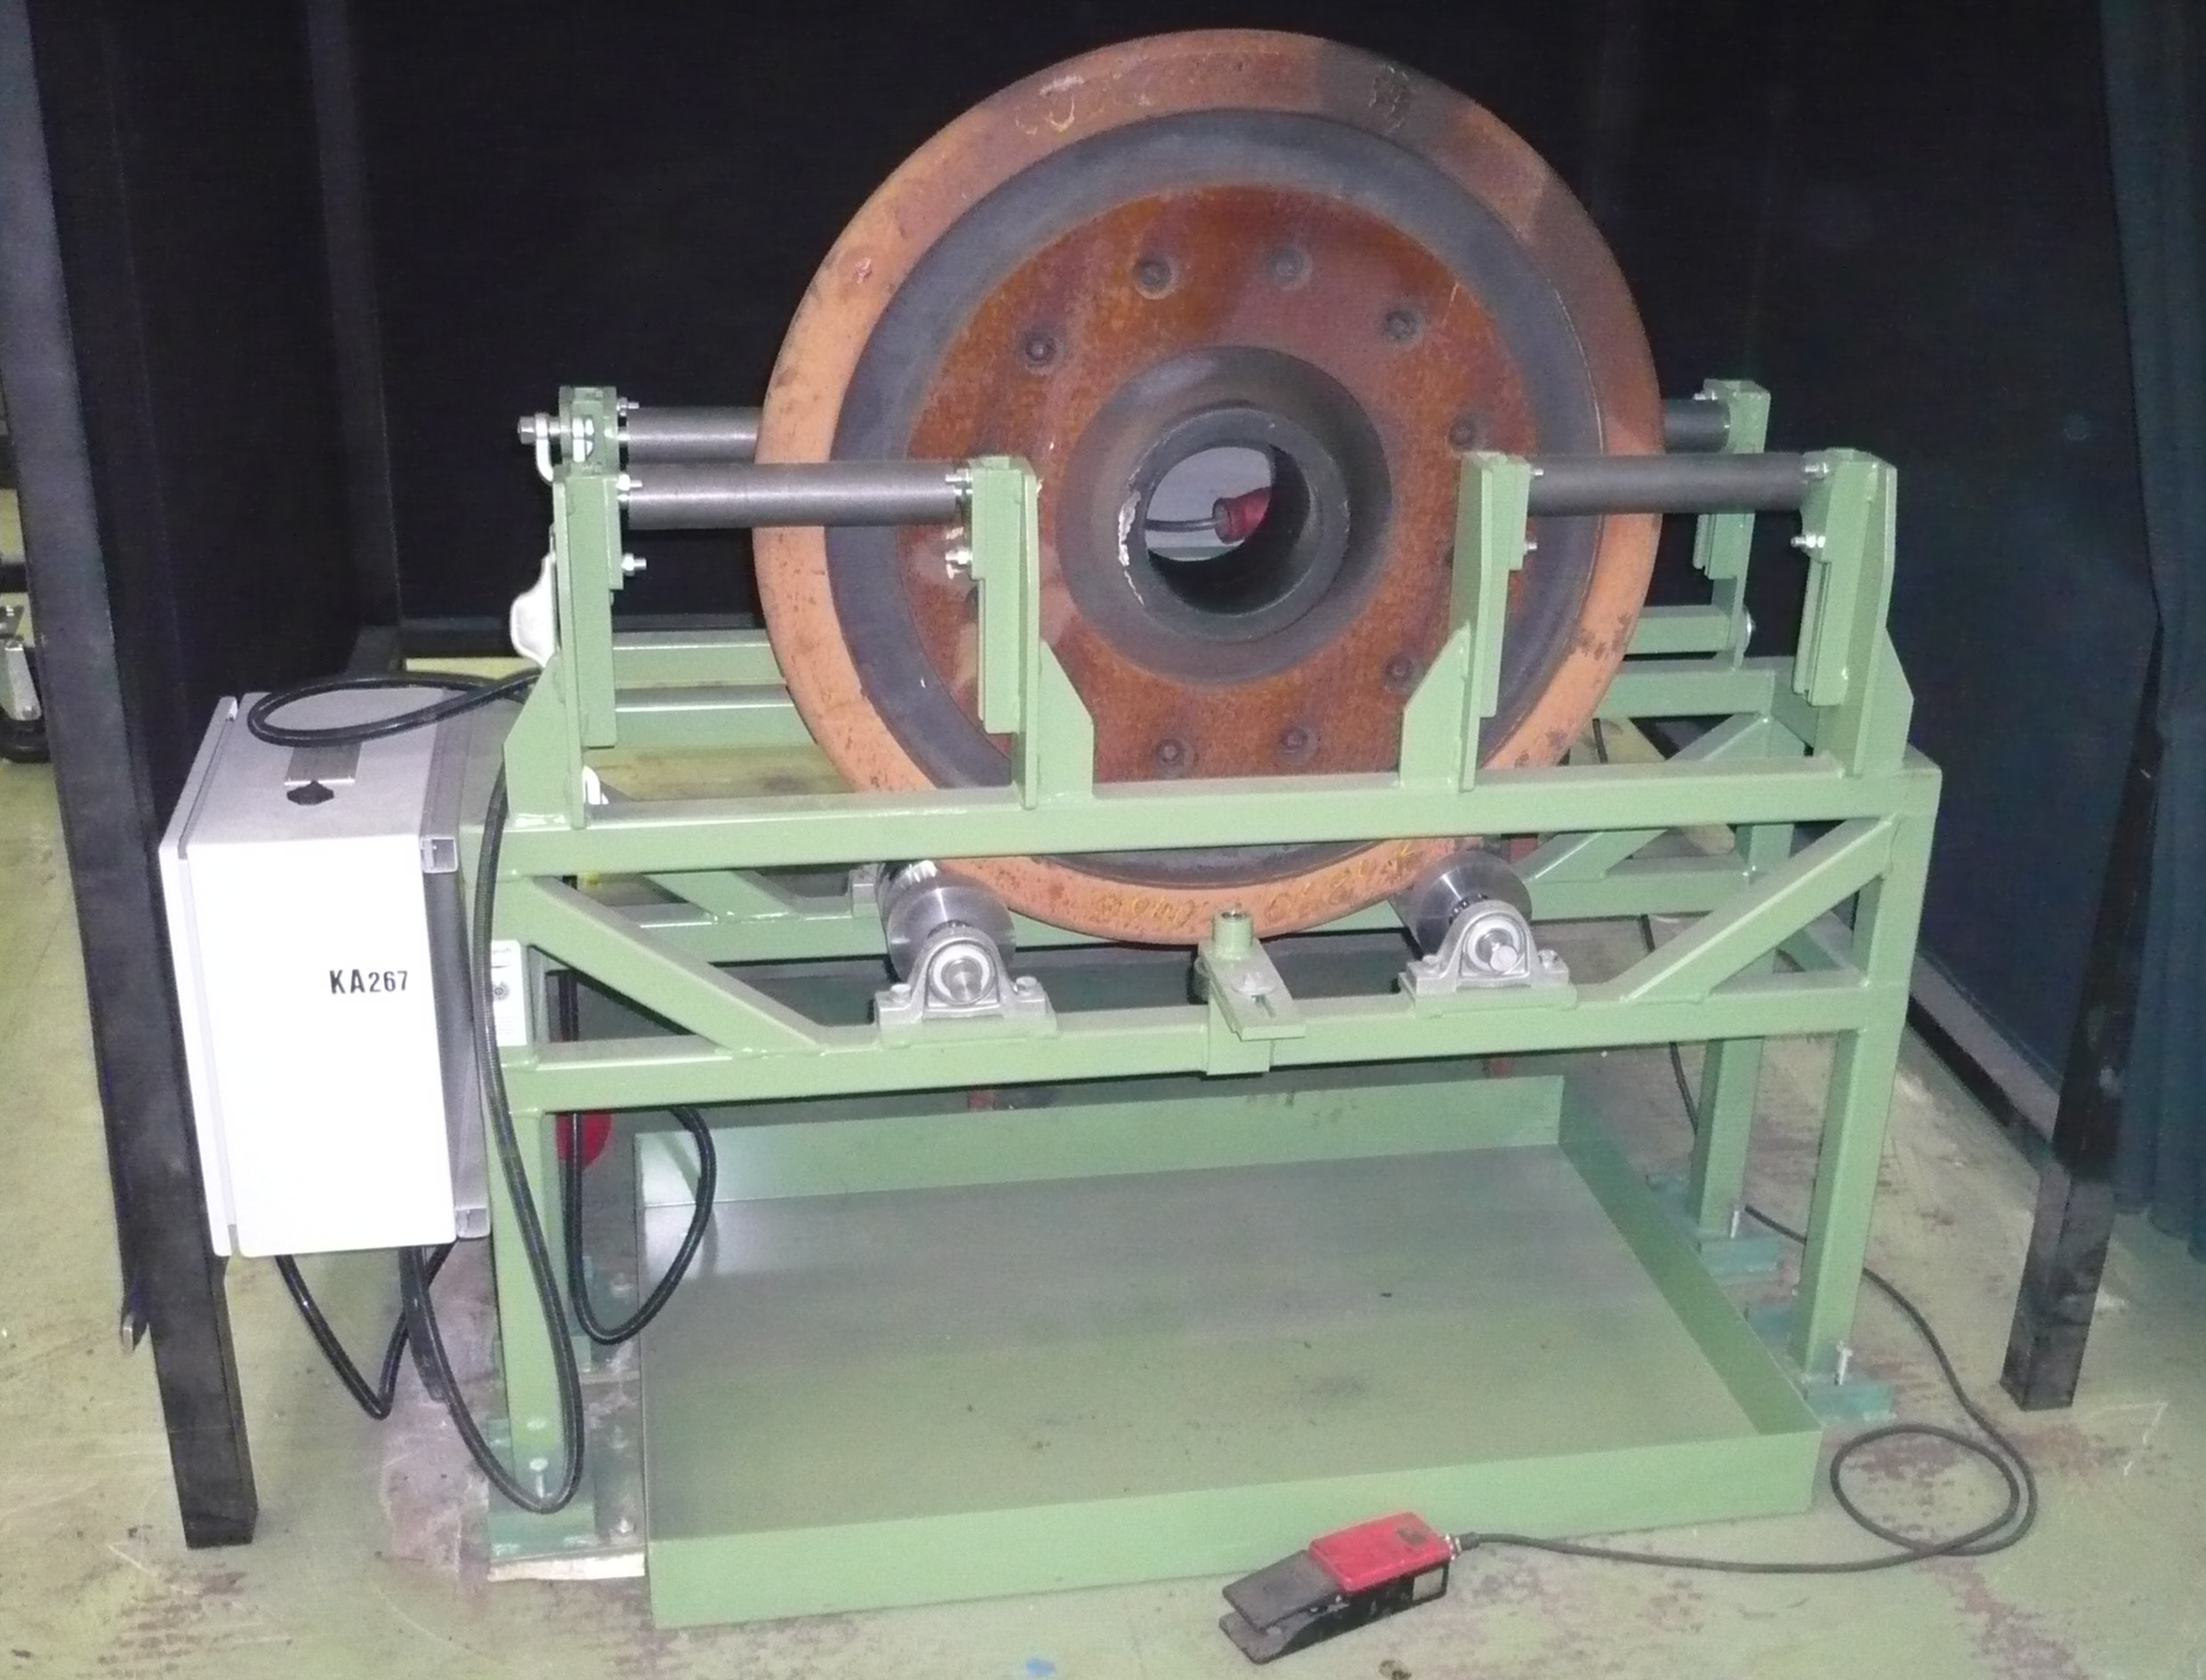 Rolling device for individual MT (magnetic particle) wheel inspection: For this purpose, the wheel discs are positioned in upright position on the device, where they are safely guided laterally, while being set into regular rotation.